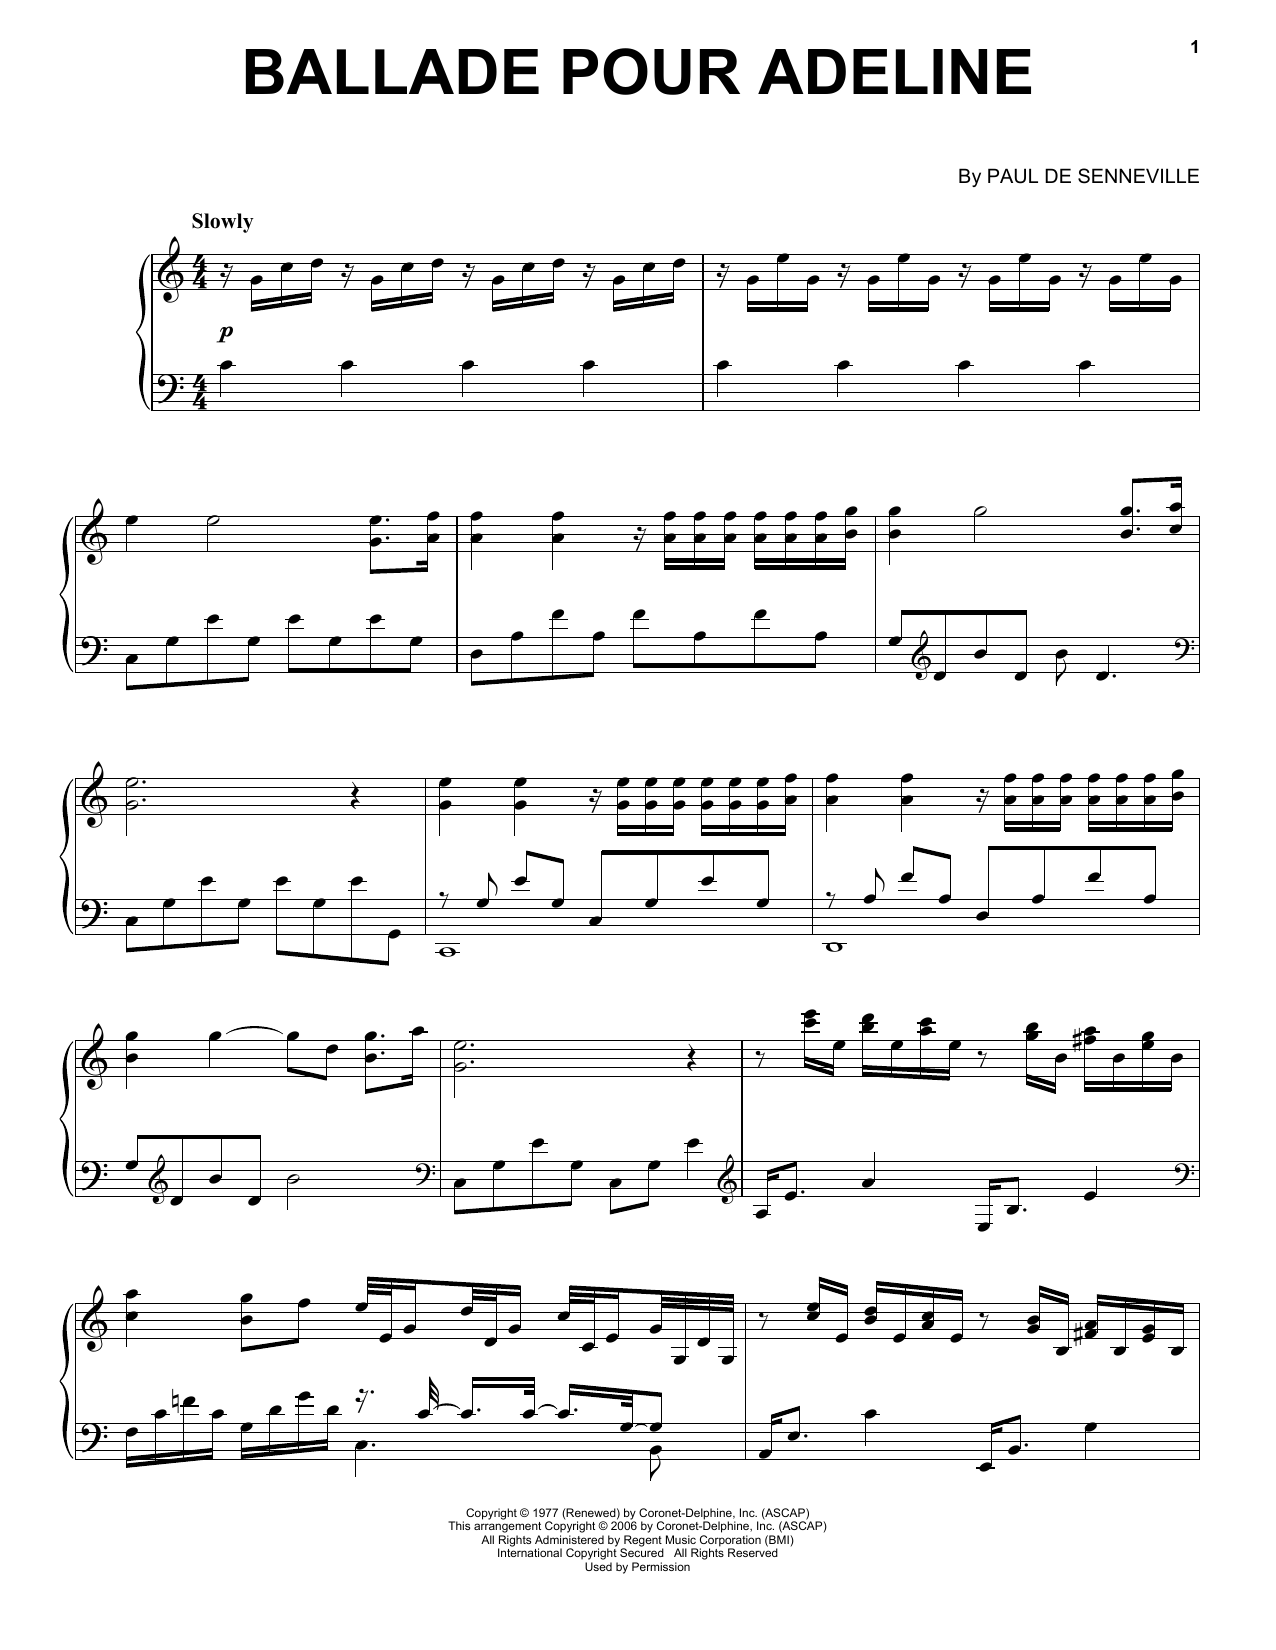 Richard Clayderman Ballade Pour Adeline sheet music notes and chords